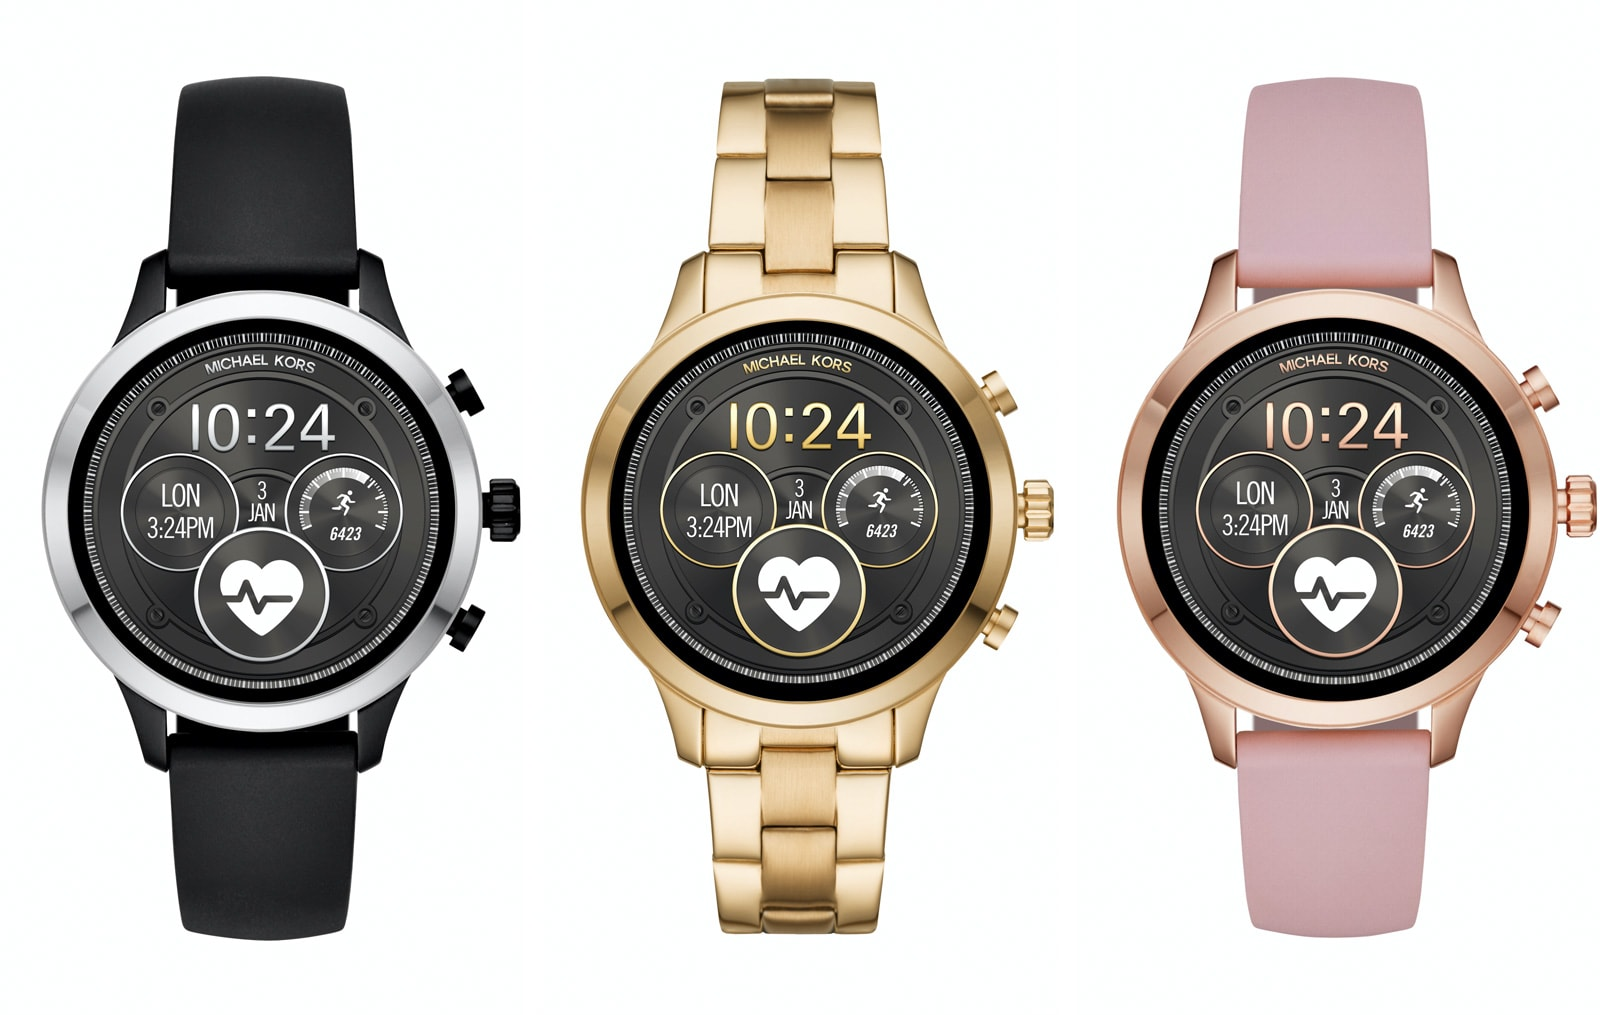 b084904b3774 Michael Kors  latest Wear OS watch features a popular design